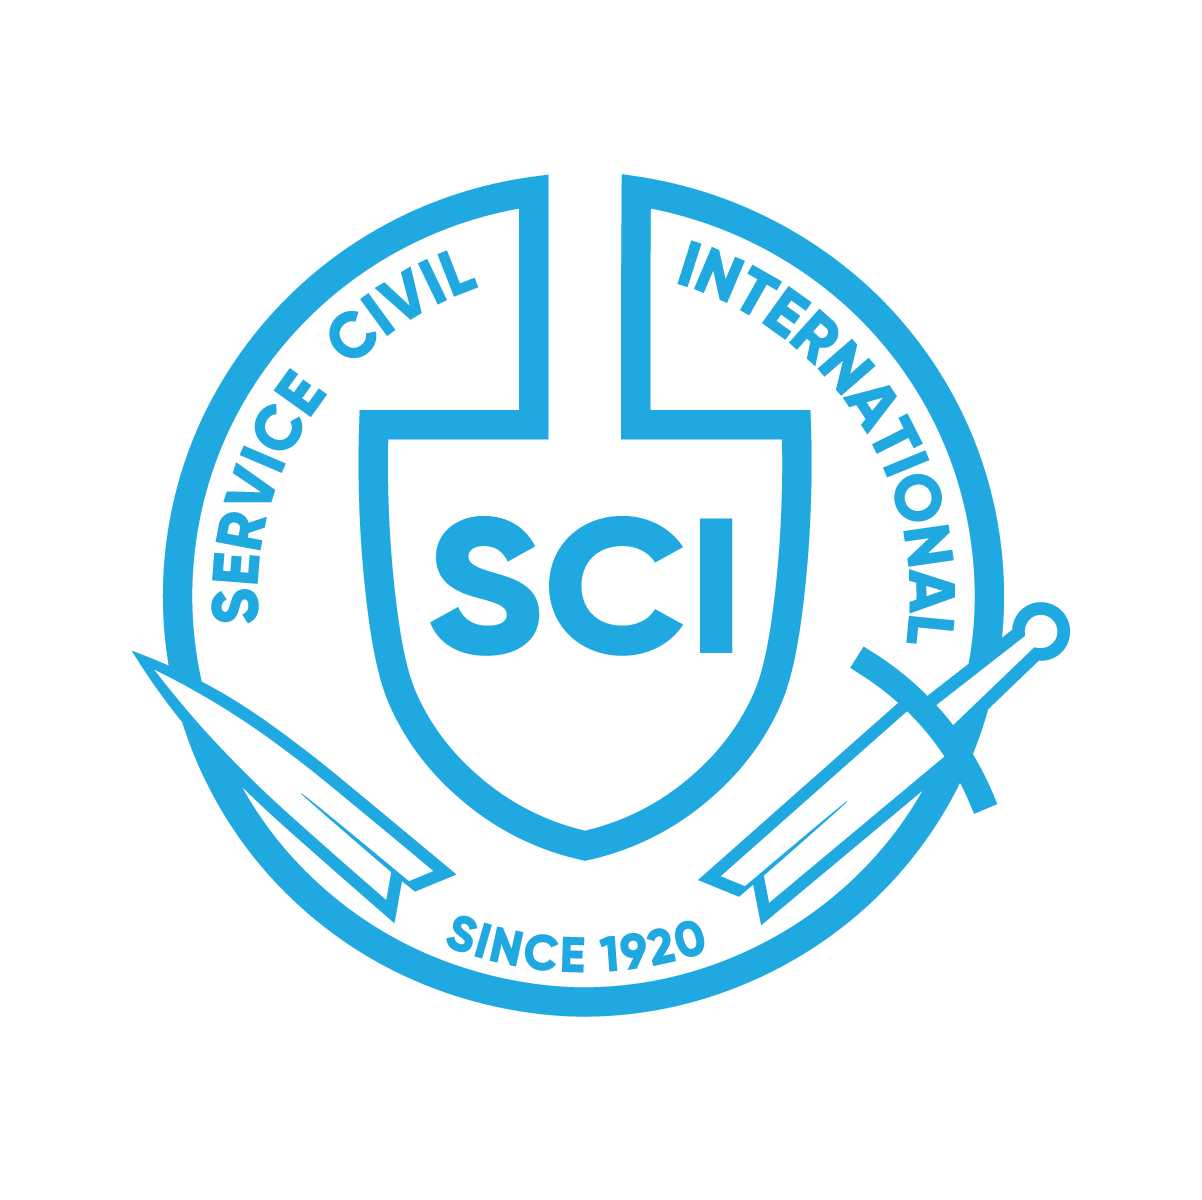 Service Civil International